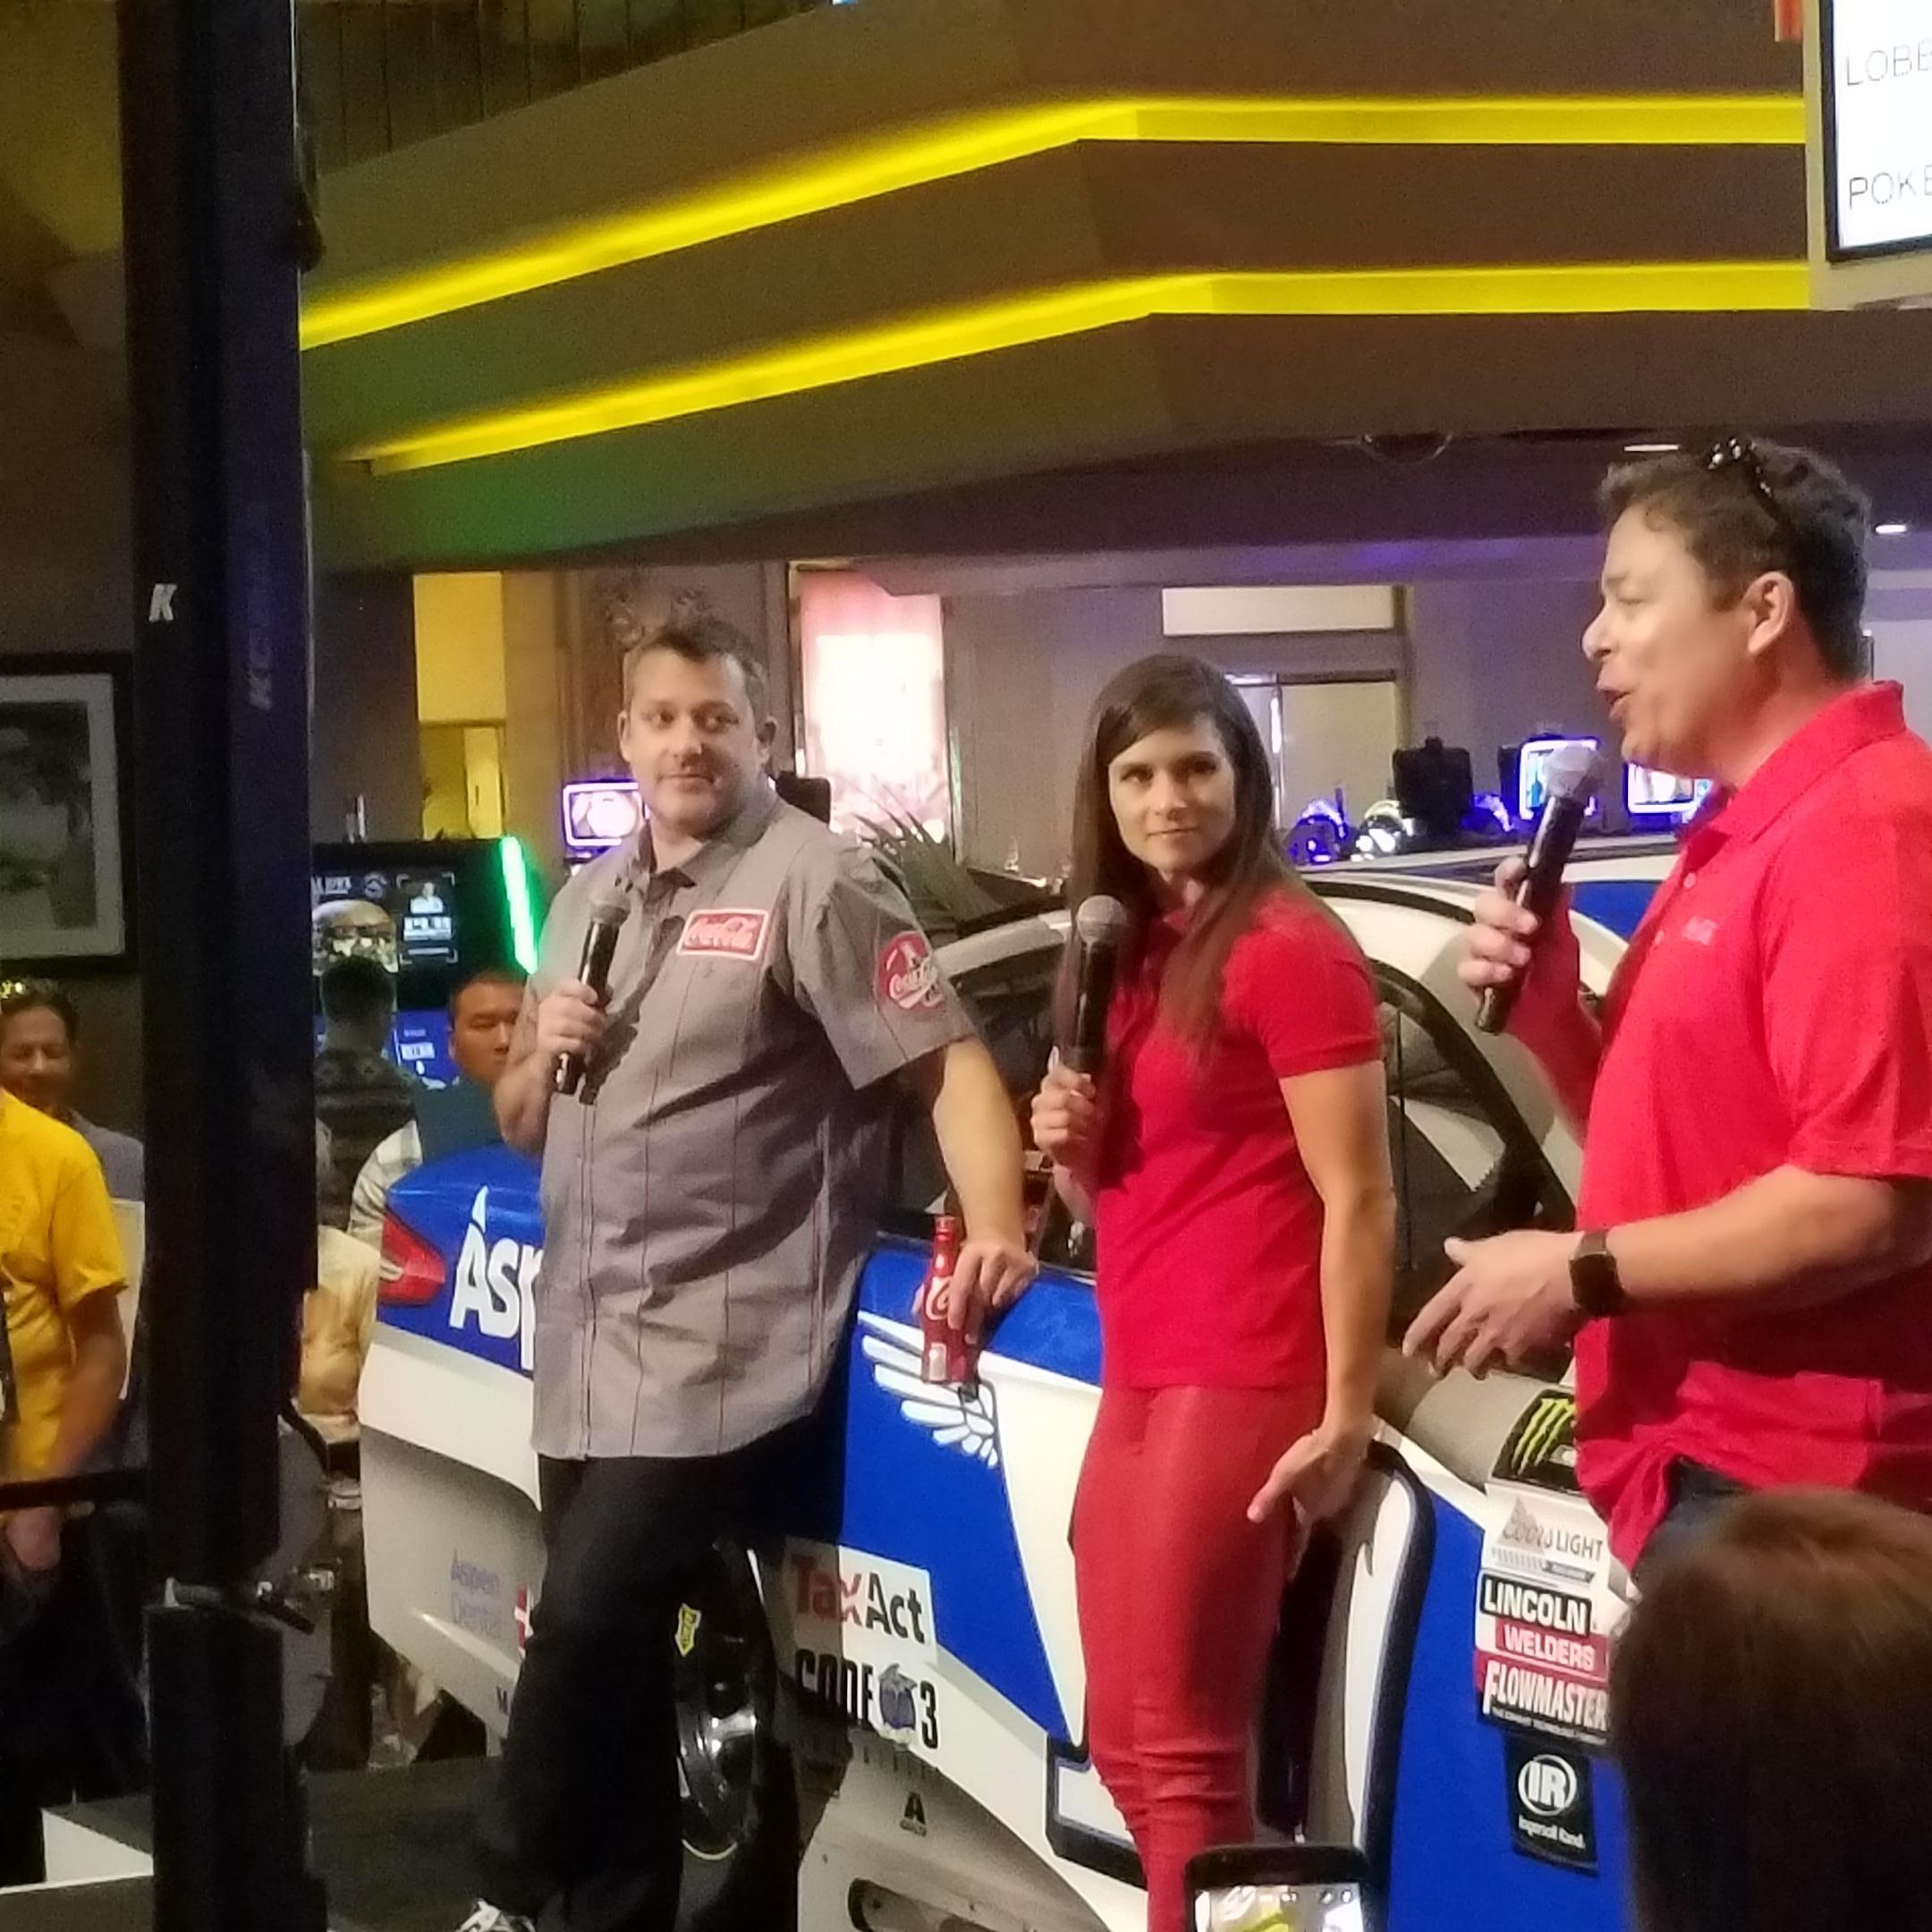 Danica Patrick and Tony Stewart on race weekend.